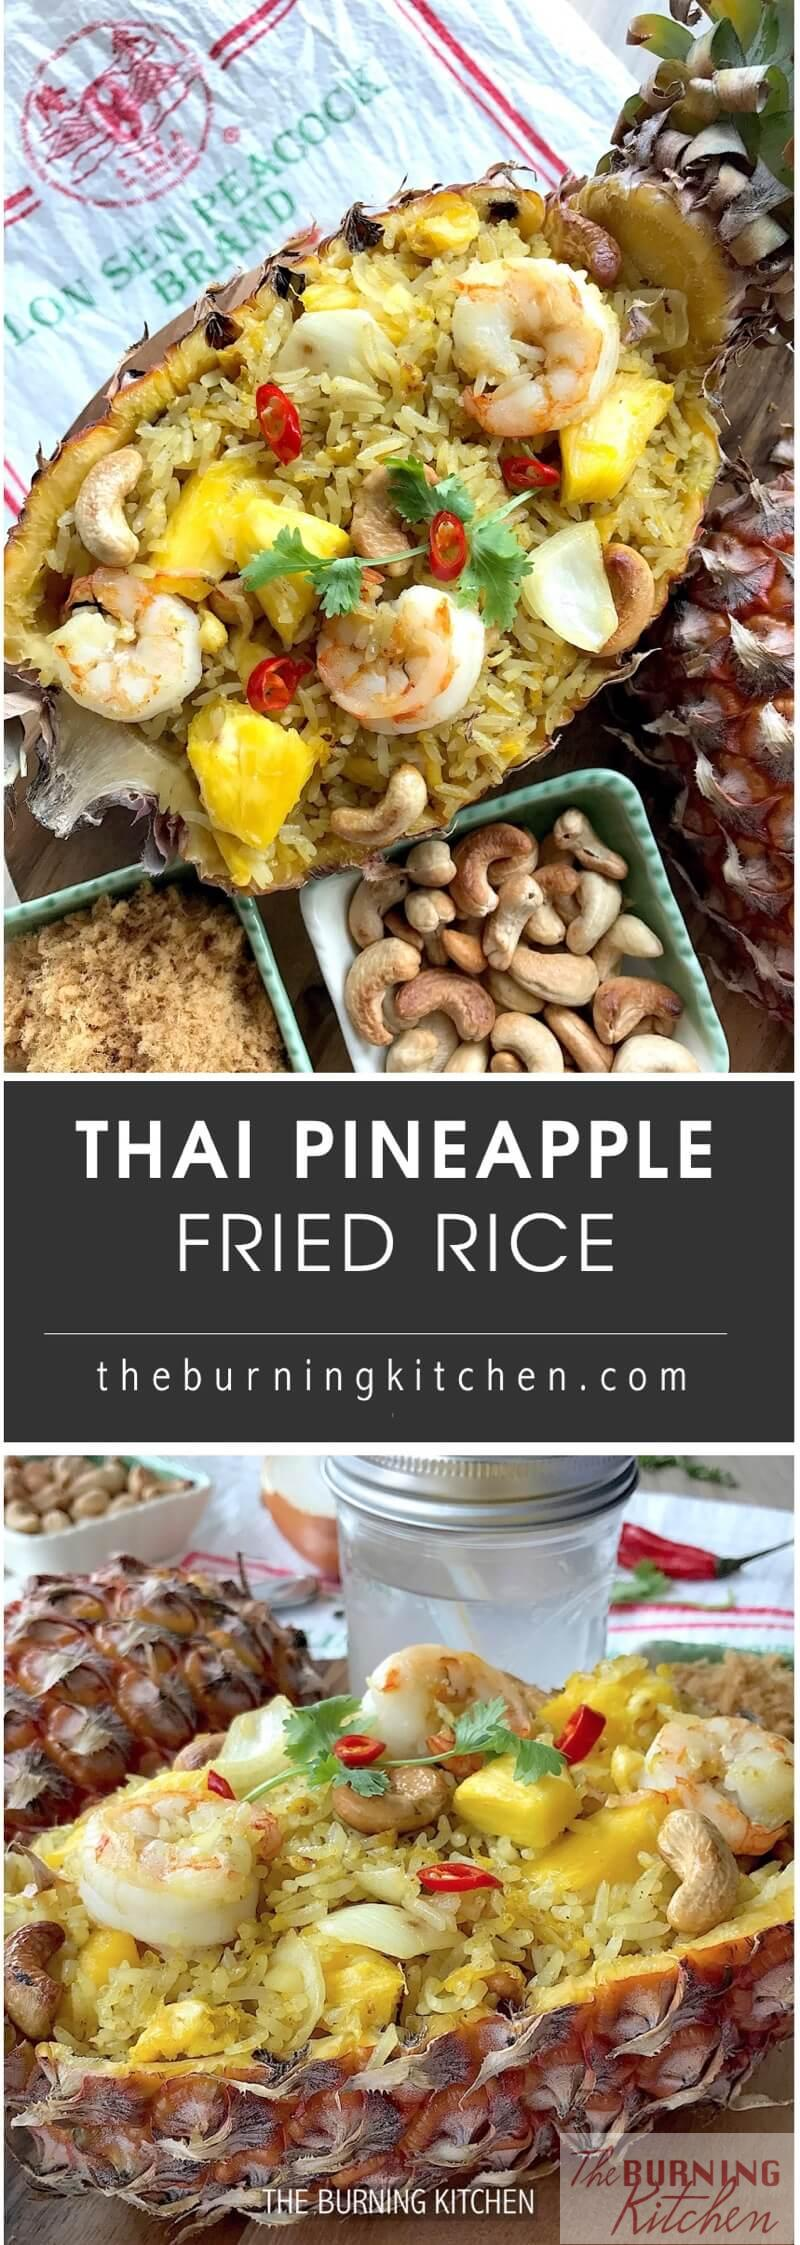 Thai Pineapple Fried Rice (Khao Phad Saparod) is a one-wok crowd-pleaser that boasts a plethora of flavours and textures ranging from sweet, savoury, spicy, crunchy to fluffy! Make this to impress your friends today!#pineapplefriedrice #thaifood #KhaoPhadSaparod